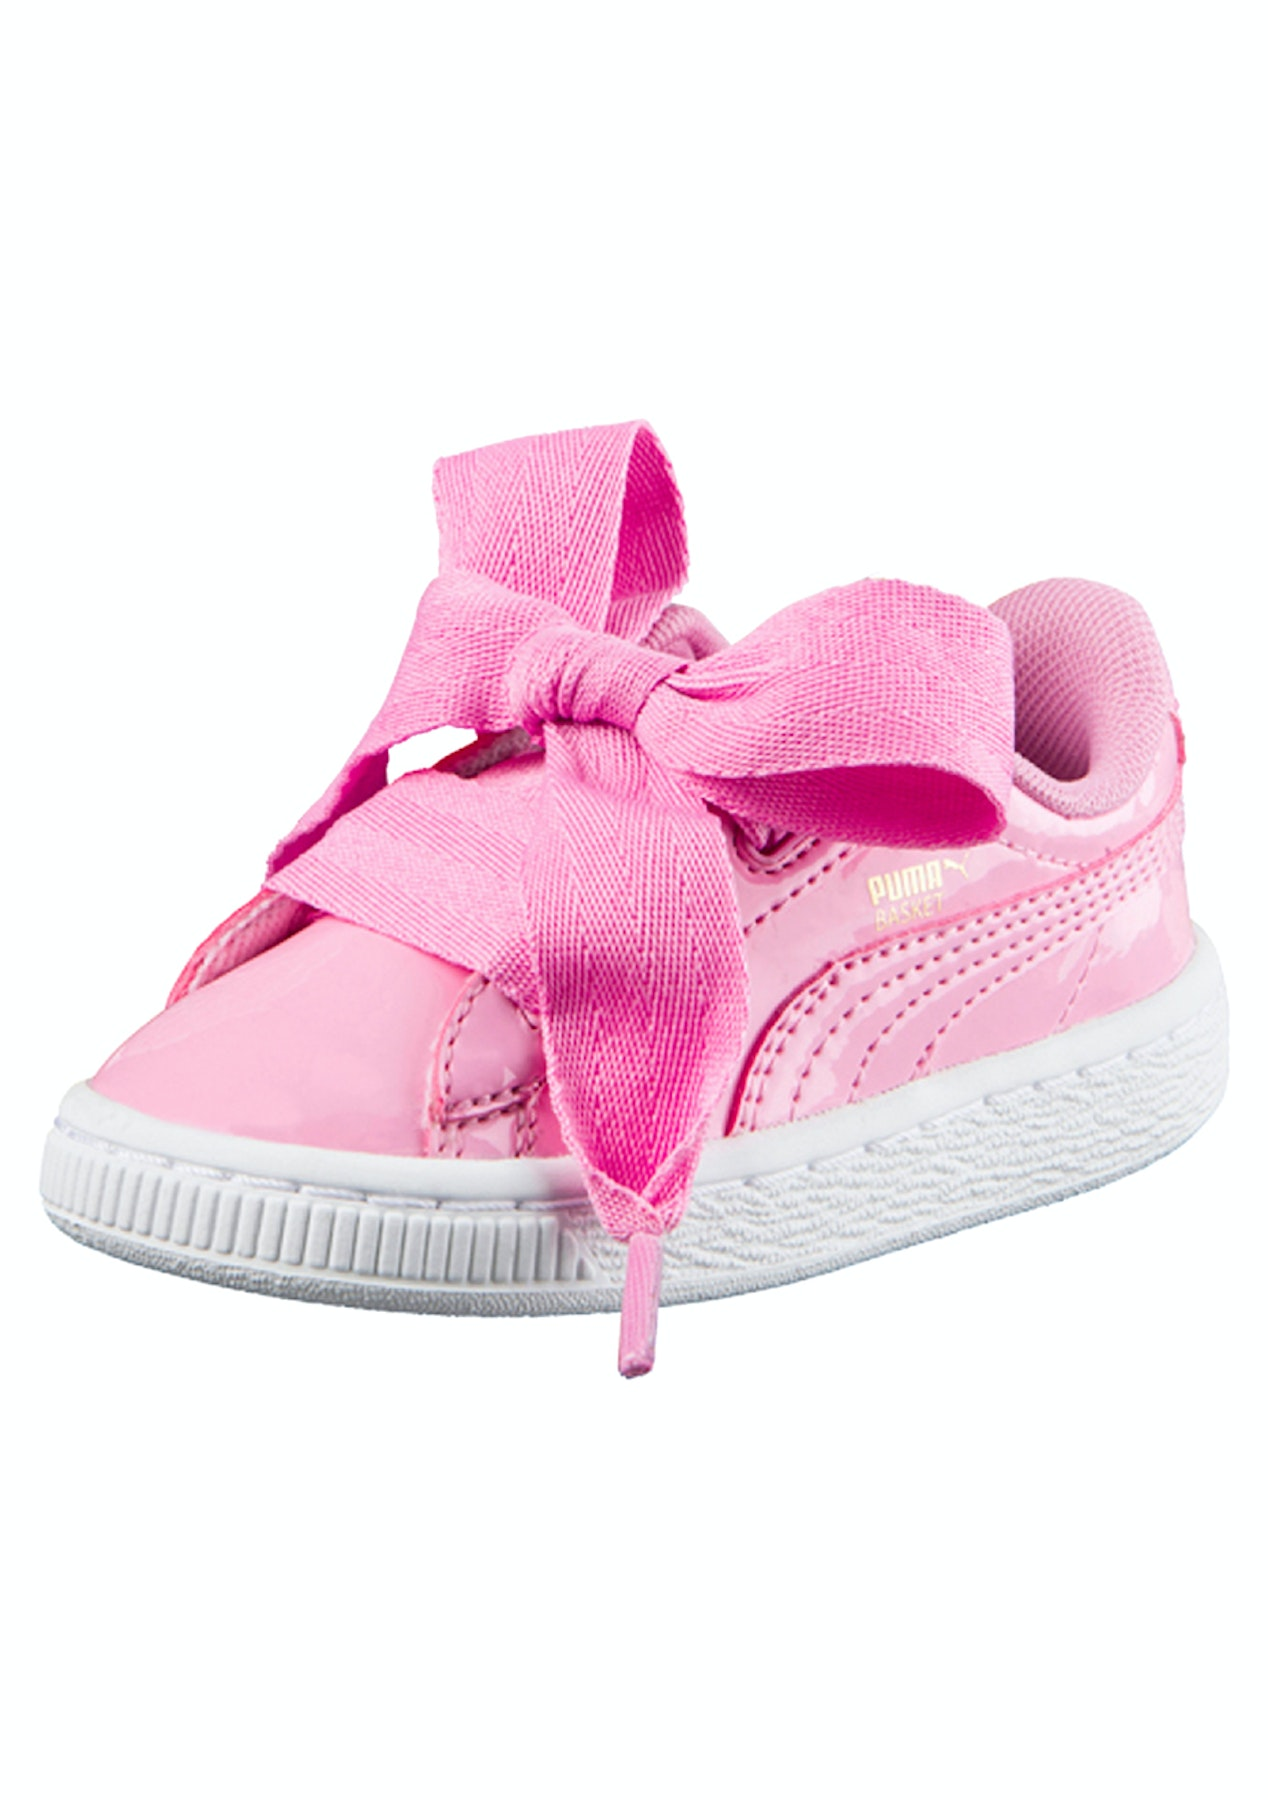 new style a027d bf5e2 Puma Infant - Basket Heart Patent - Pink